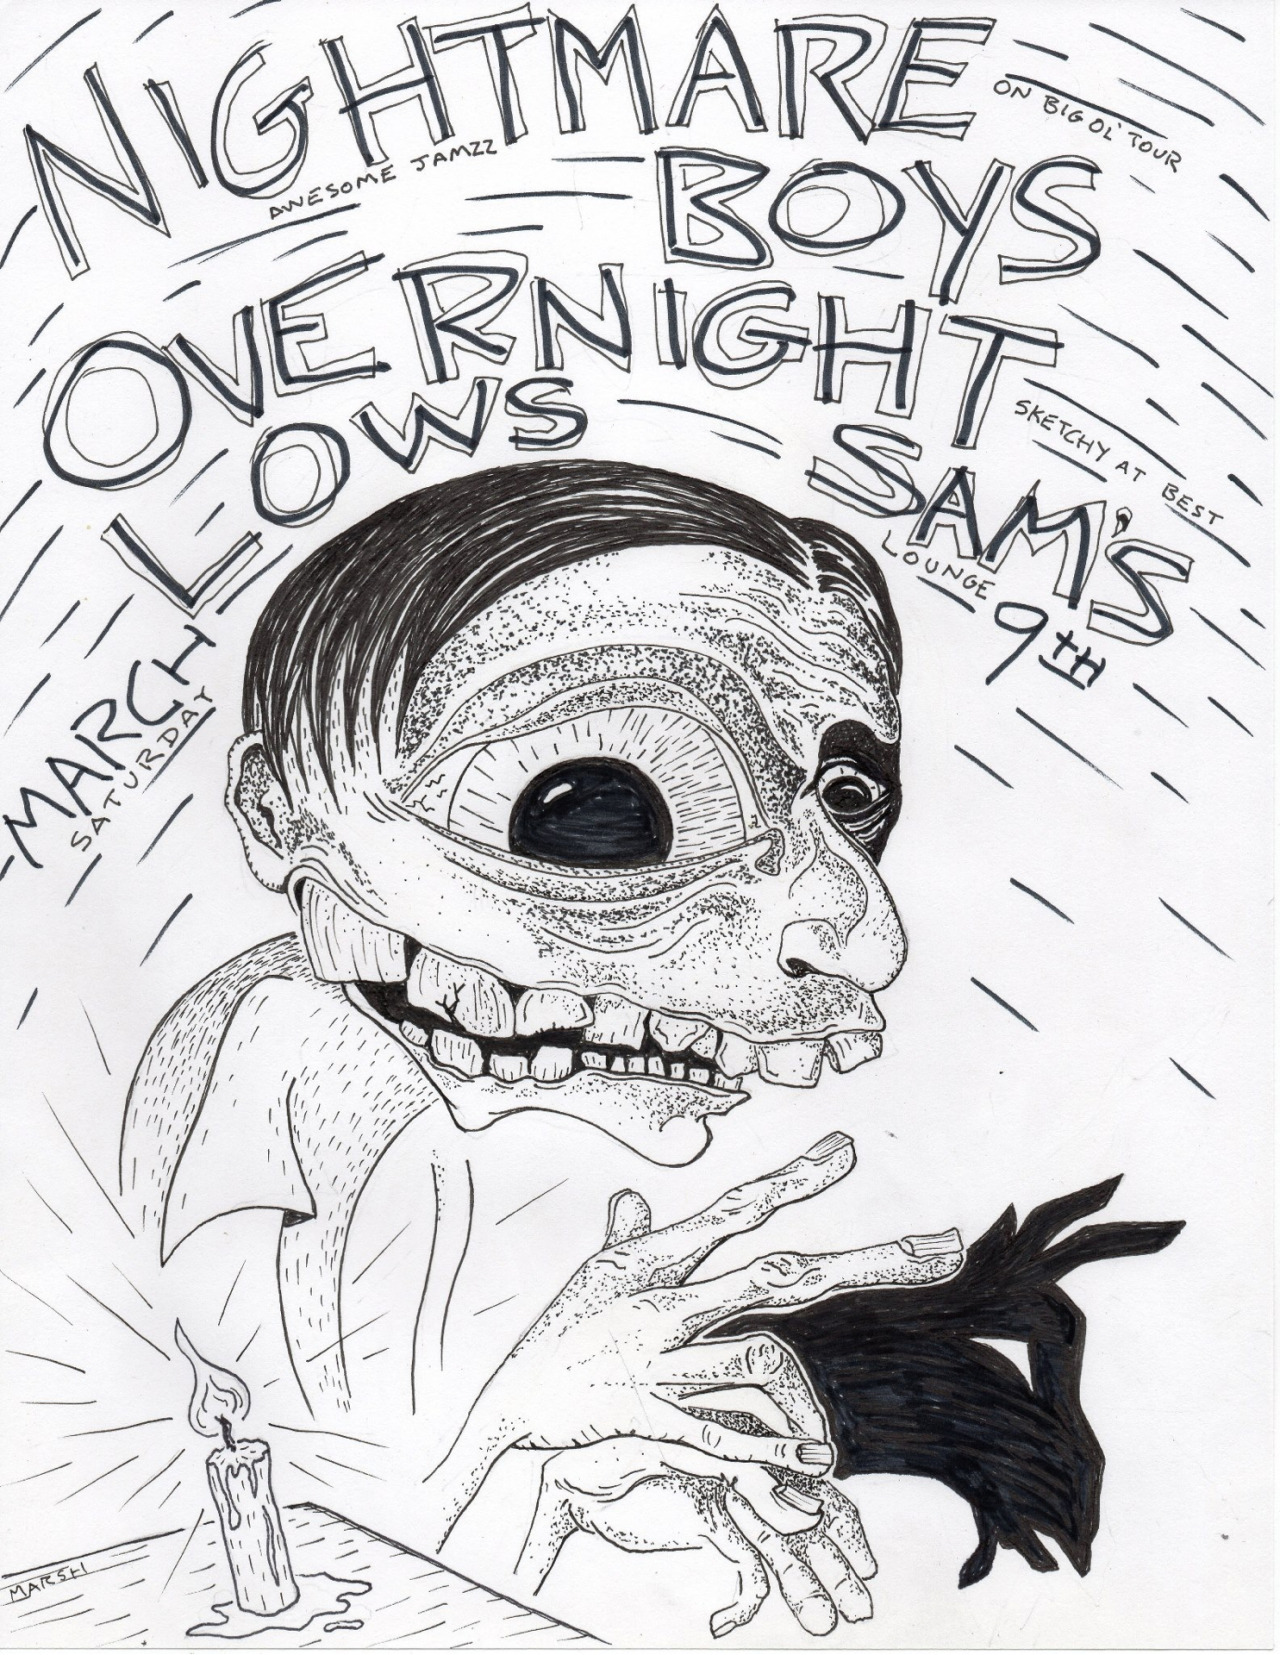 OVERNIGHT LOWS // NIGHTMARE BOYS // by MARSH NABORS